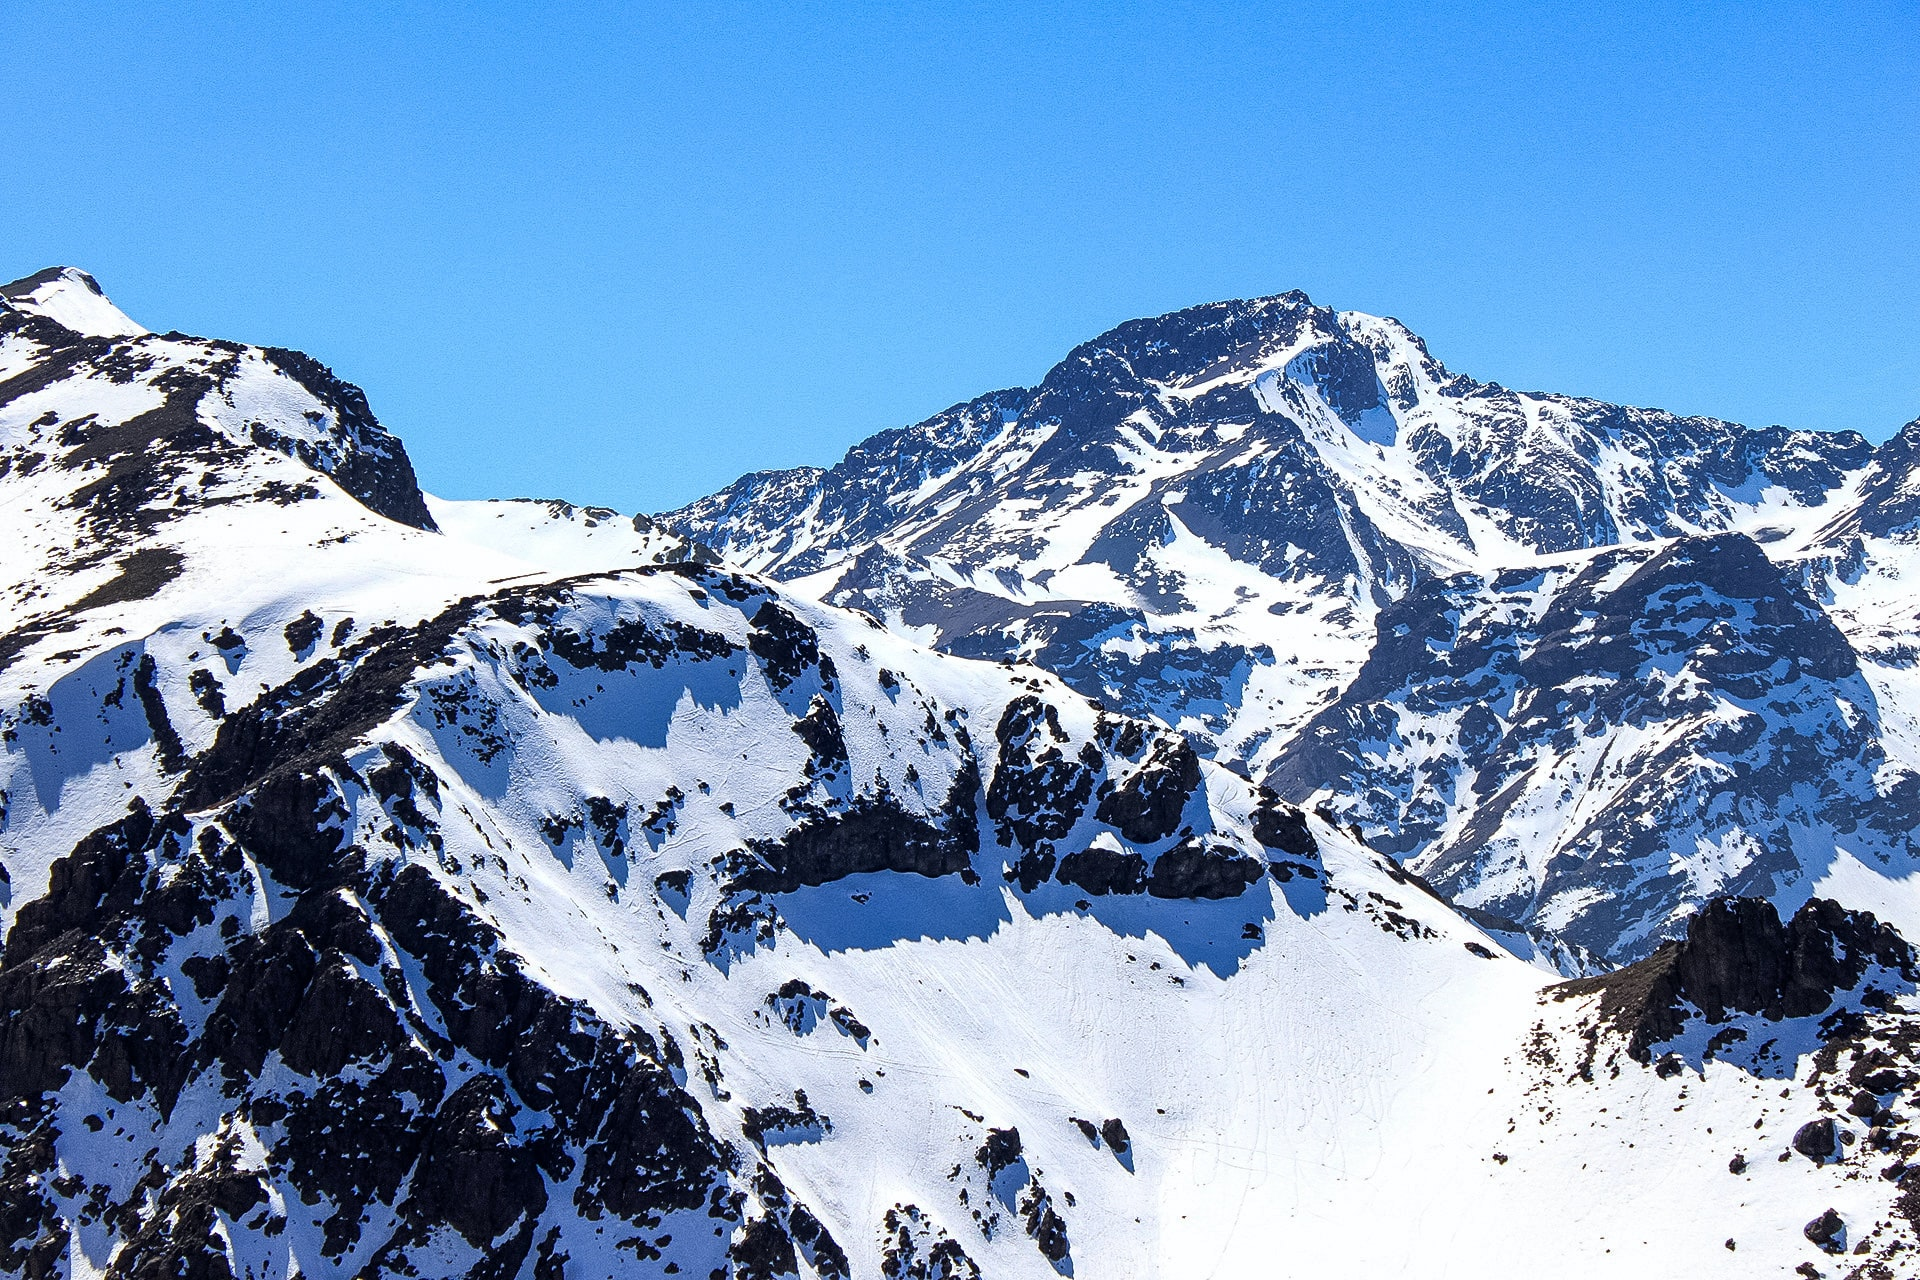 A snowy mountain peak in front of a vivid blue sky